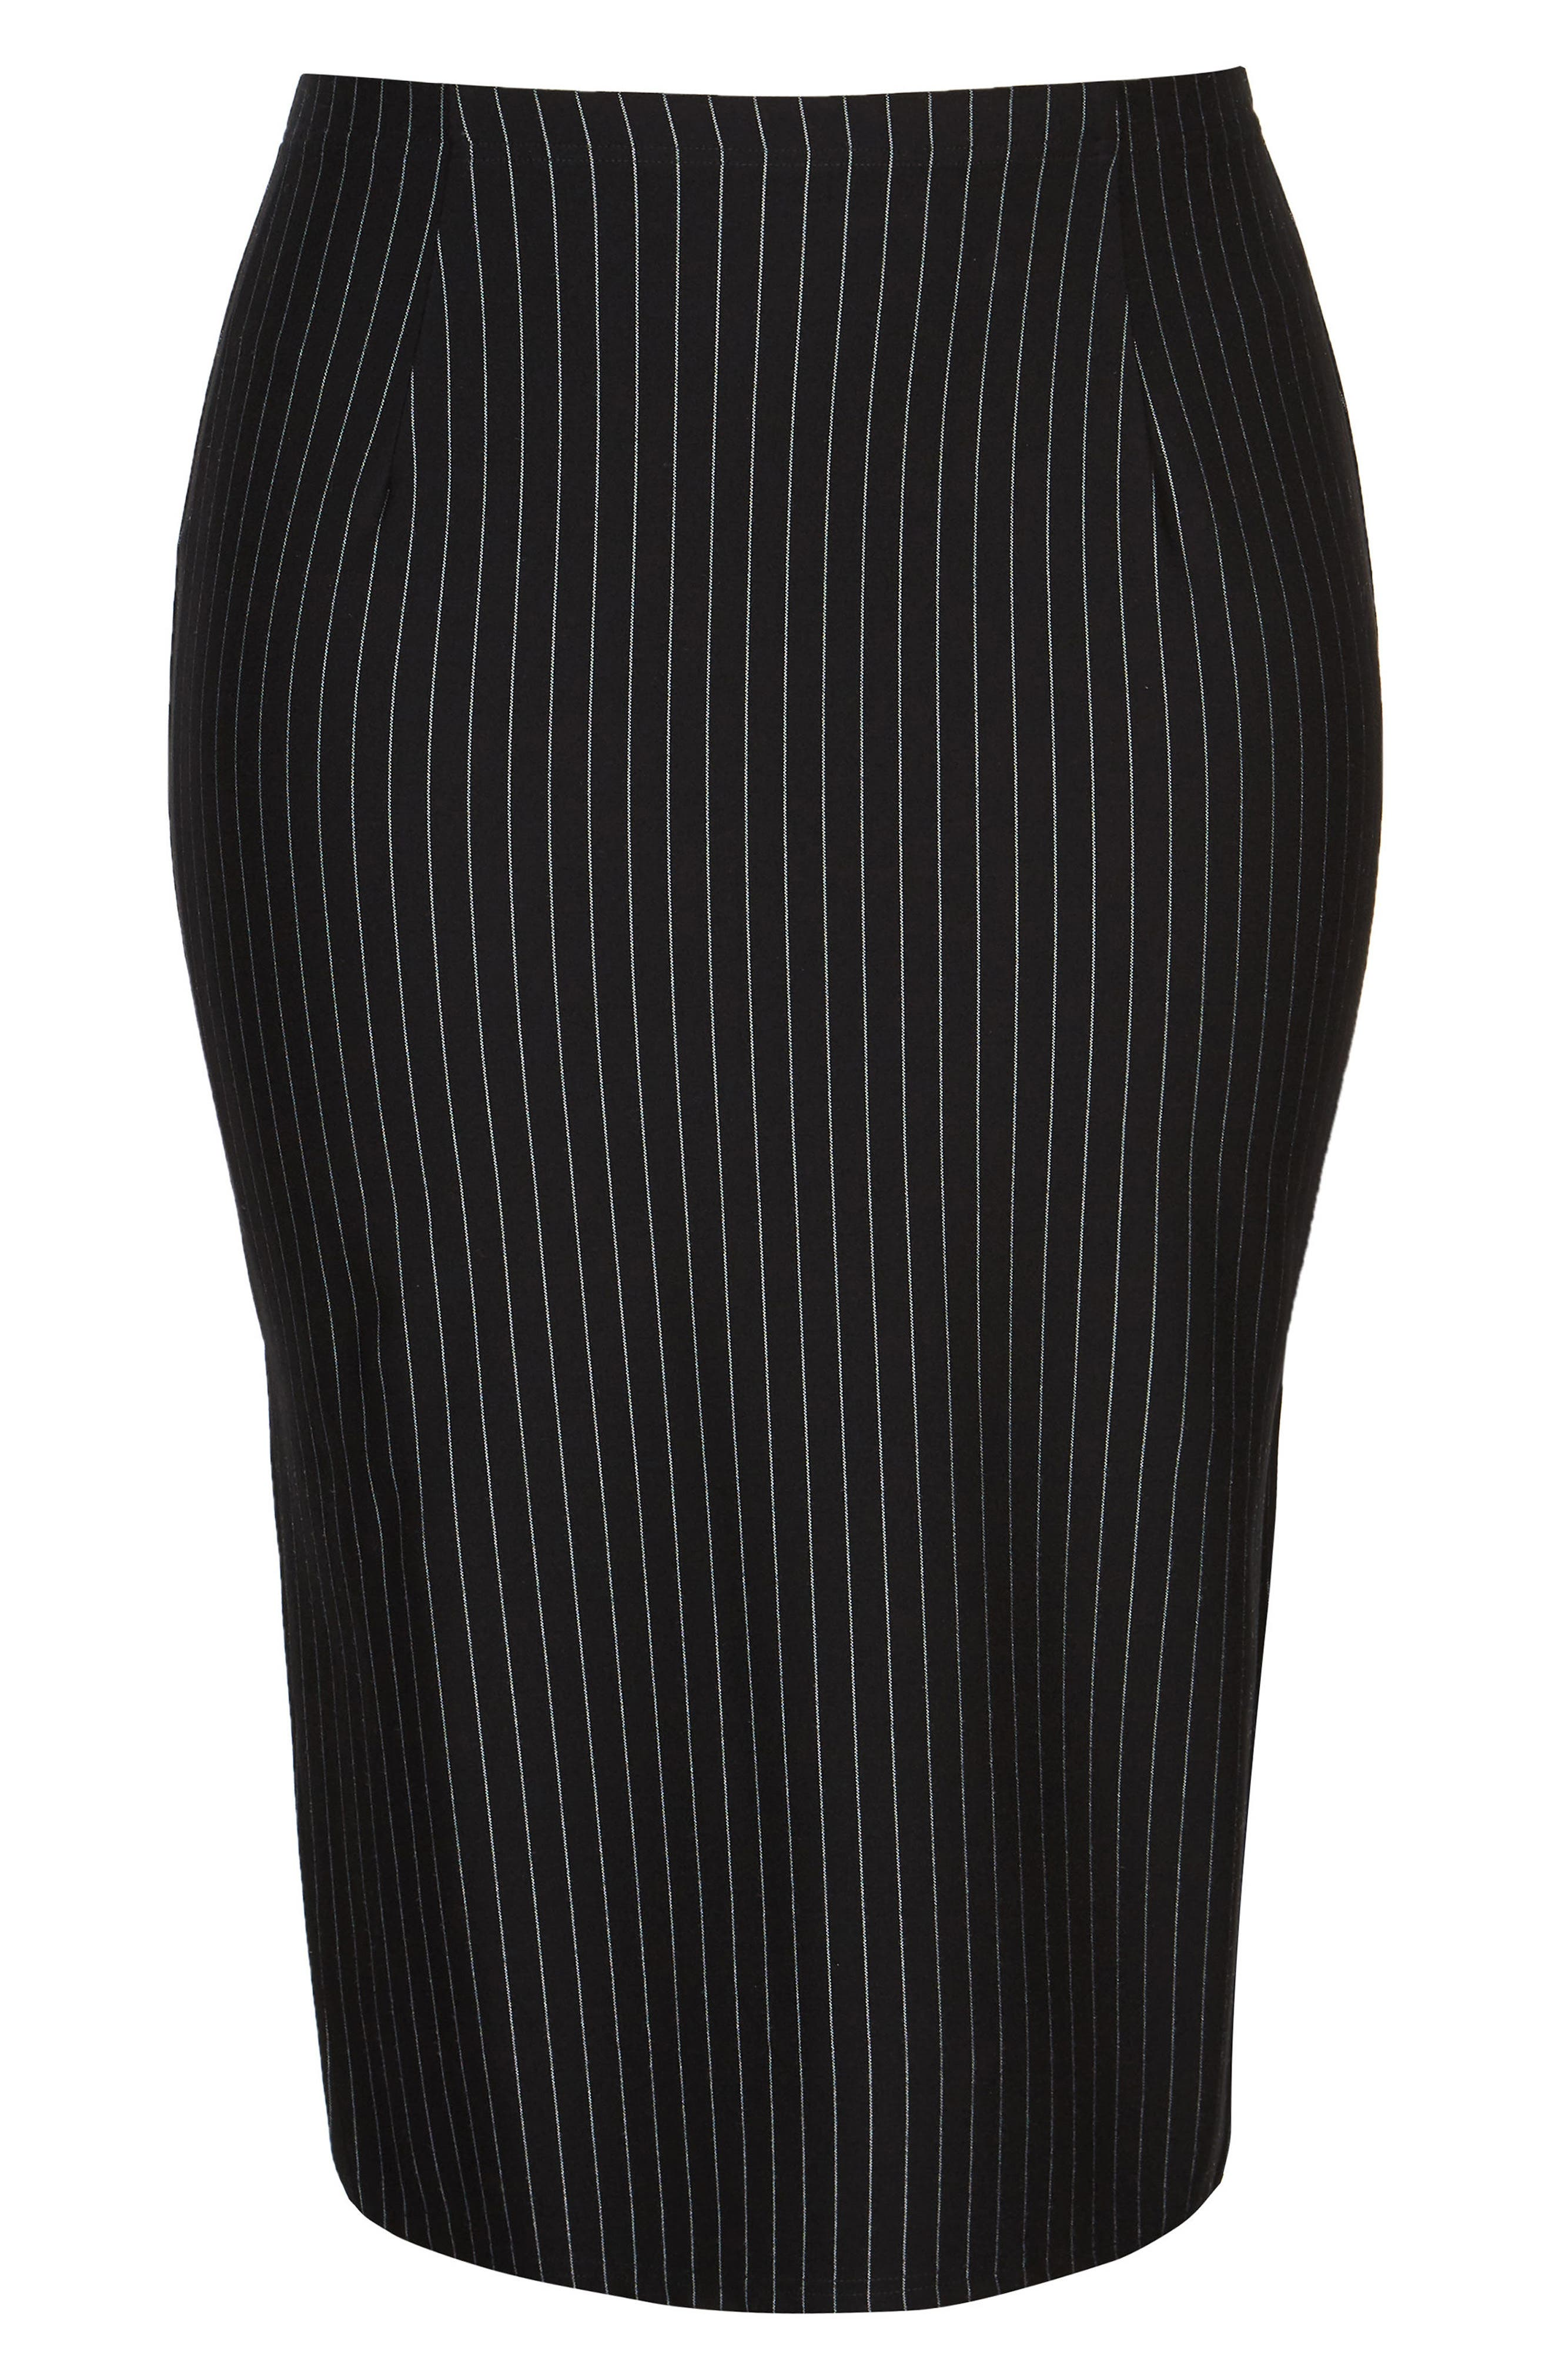 Chic City On Point Pencil skirt,                             Alternate thumbnail 3, color,